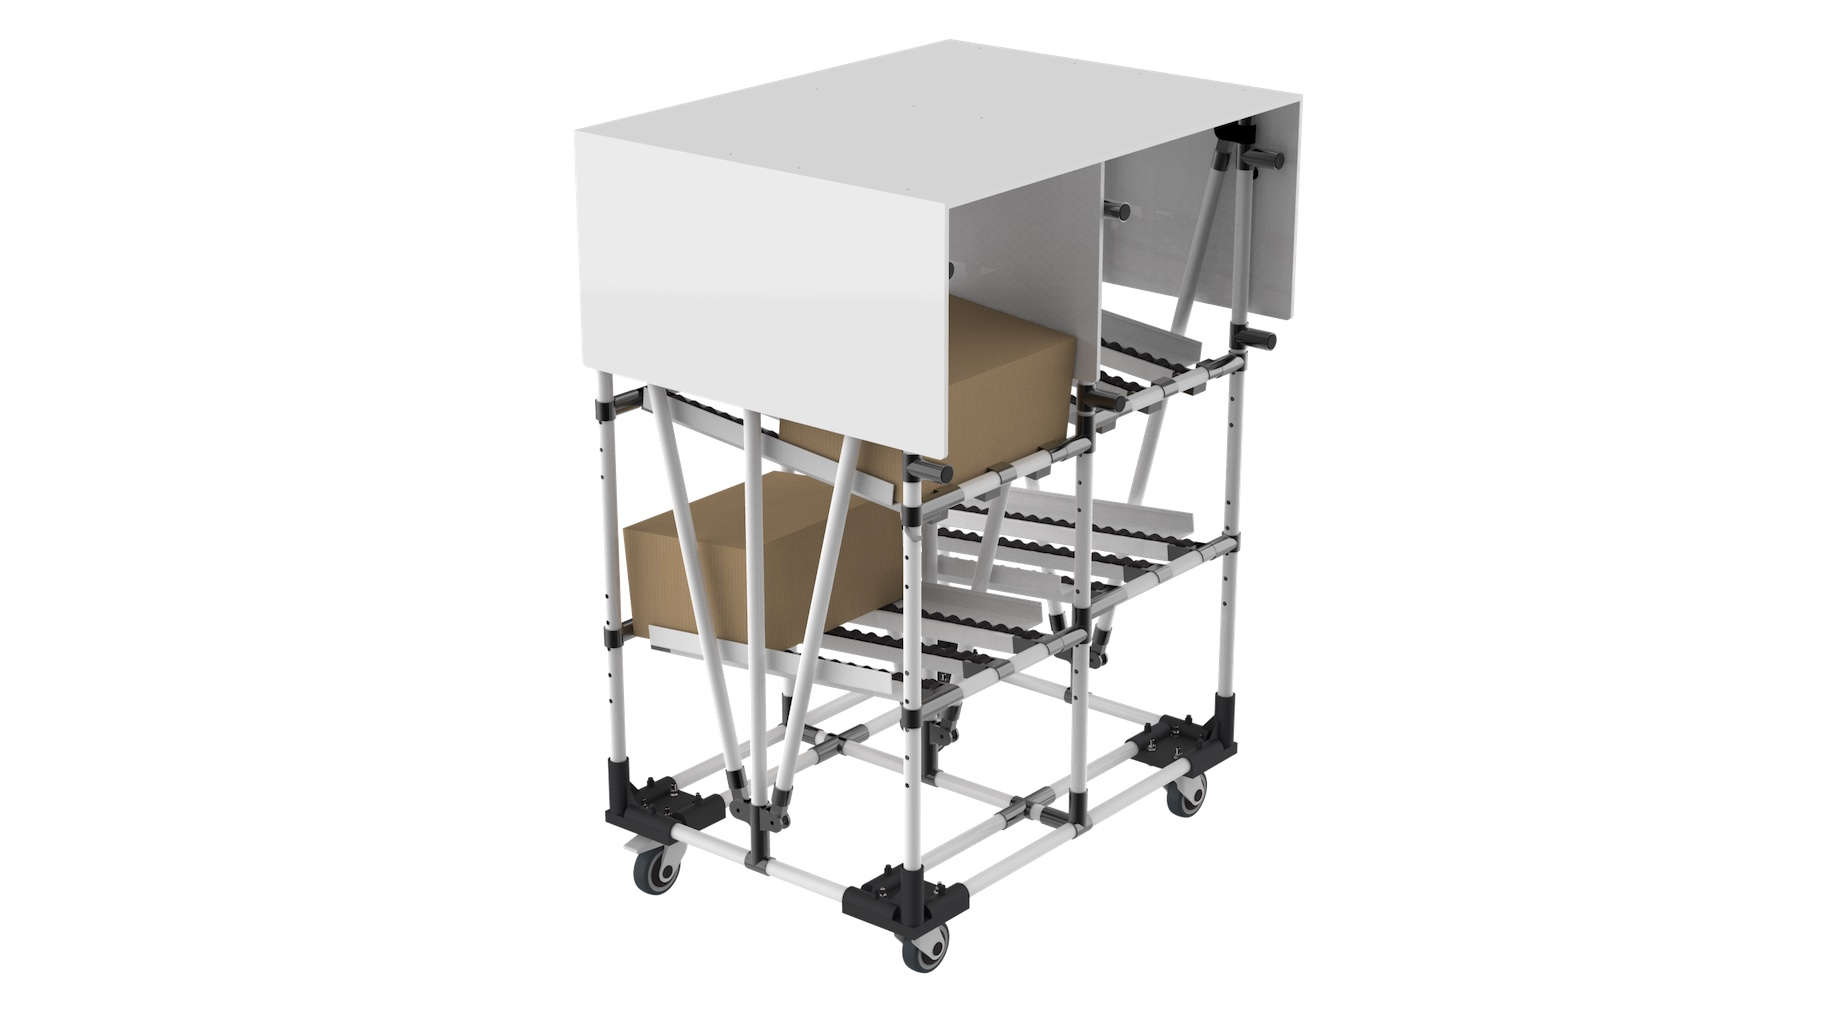 Industry - Technical flowrack with bespoke parts protection device on top position.